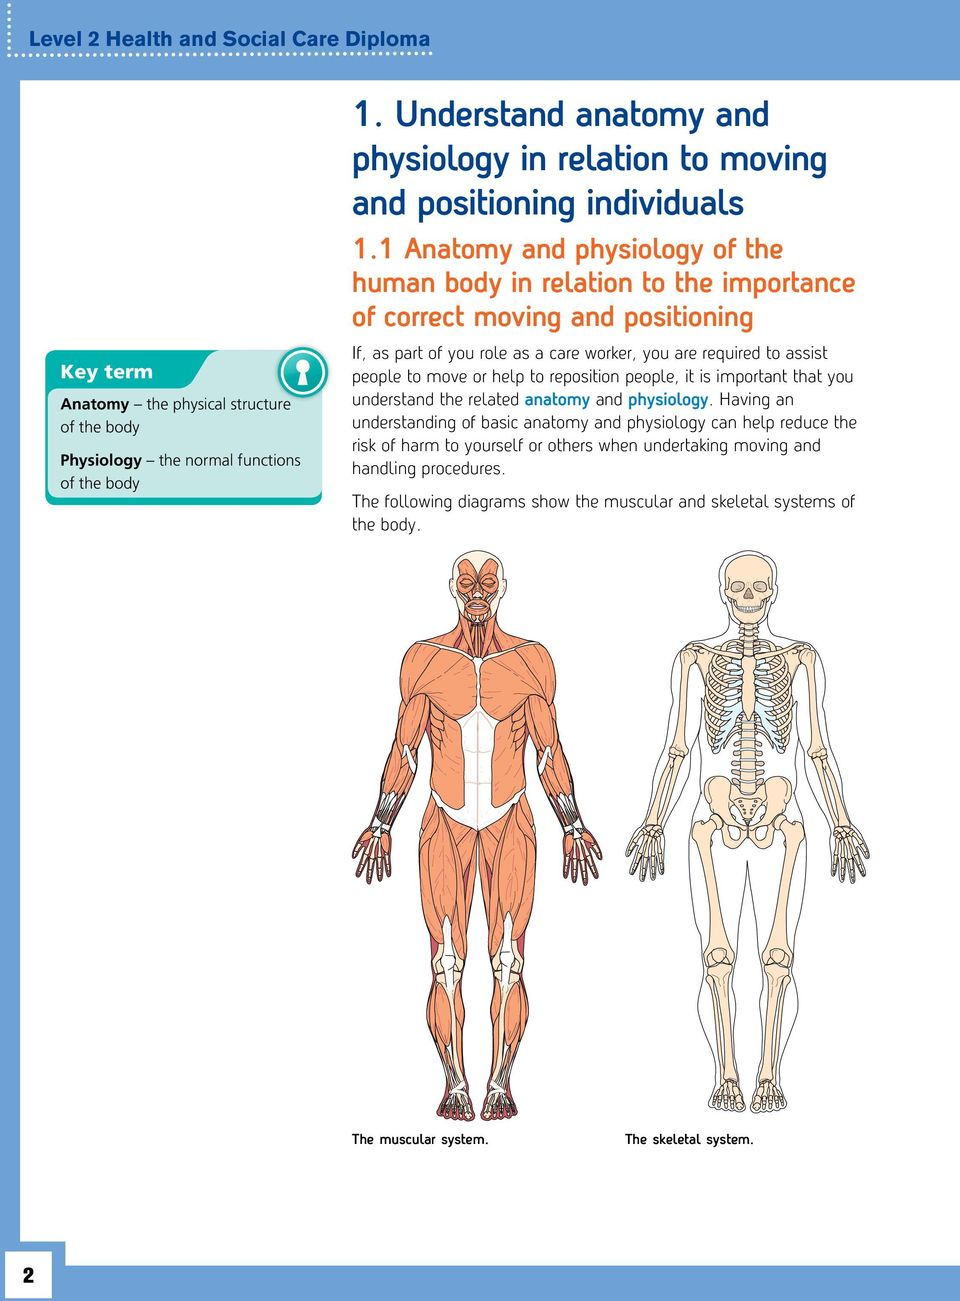 understand anatomy and physiology in relation to moving